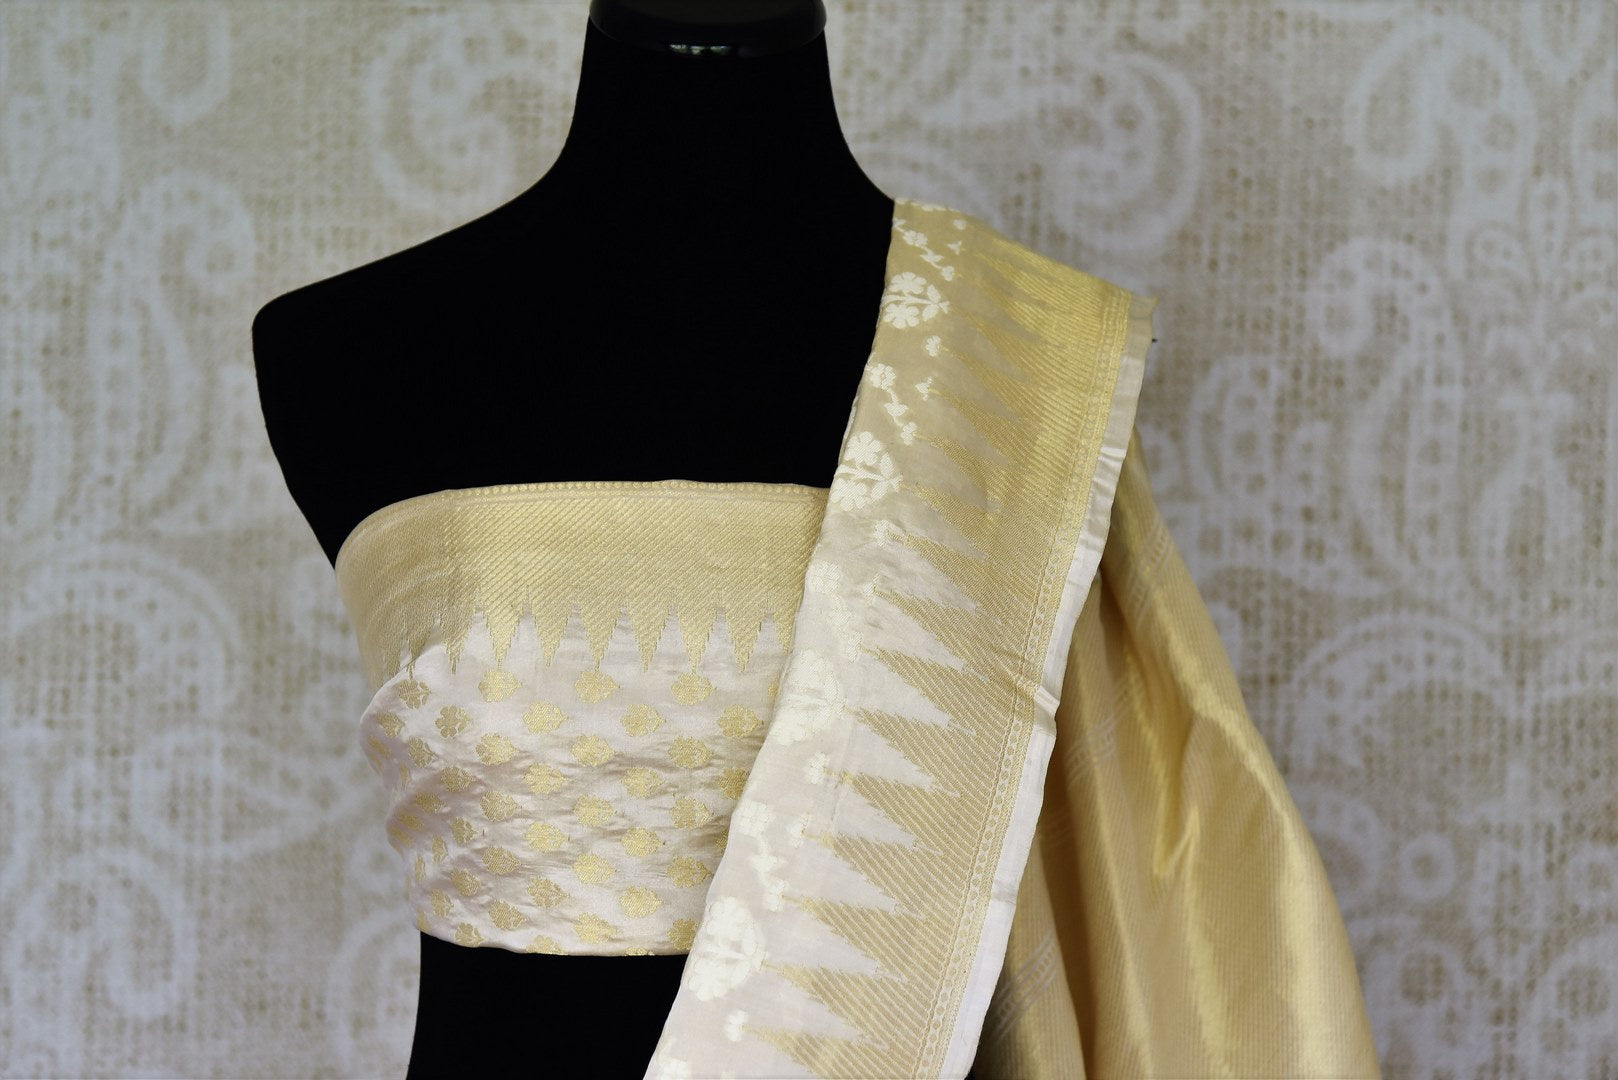 Off-white Benarasi silk saree with temple zari border buy online in USA and floral design. Adorn your style with a range of exquisite handloom sarees from Pure Elegance Indian clothing store in USA. We have an exquisite range of Indian designer sarees, silk sarees, Banarasi saris and many other varieties also available at our online store.-blouse pallu